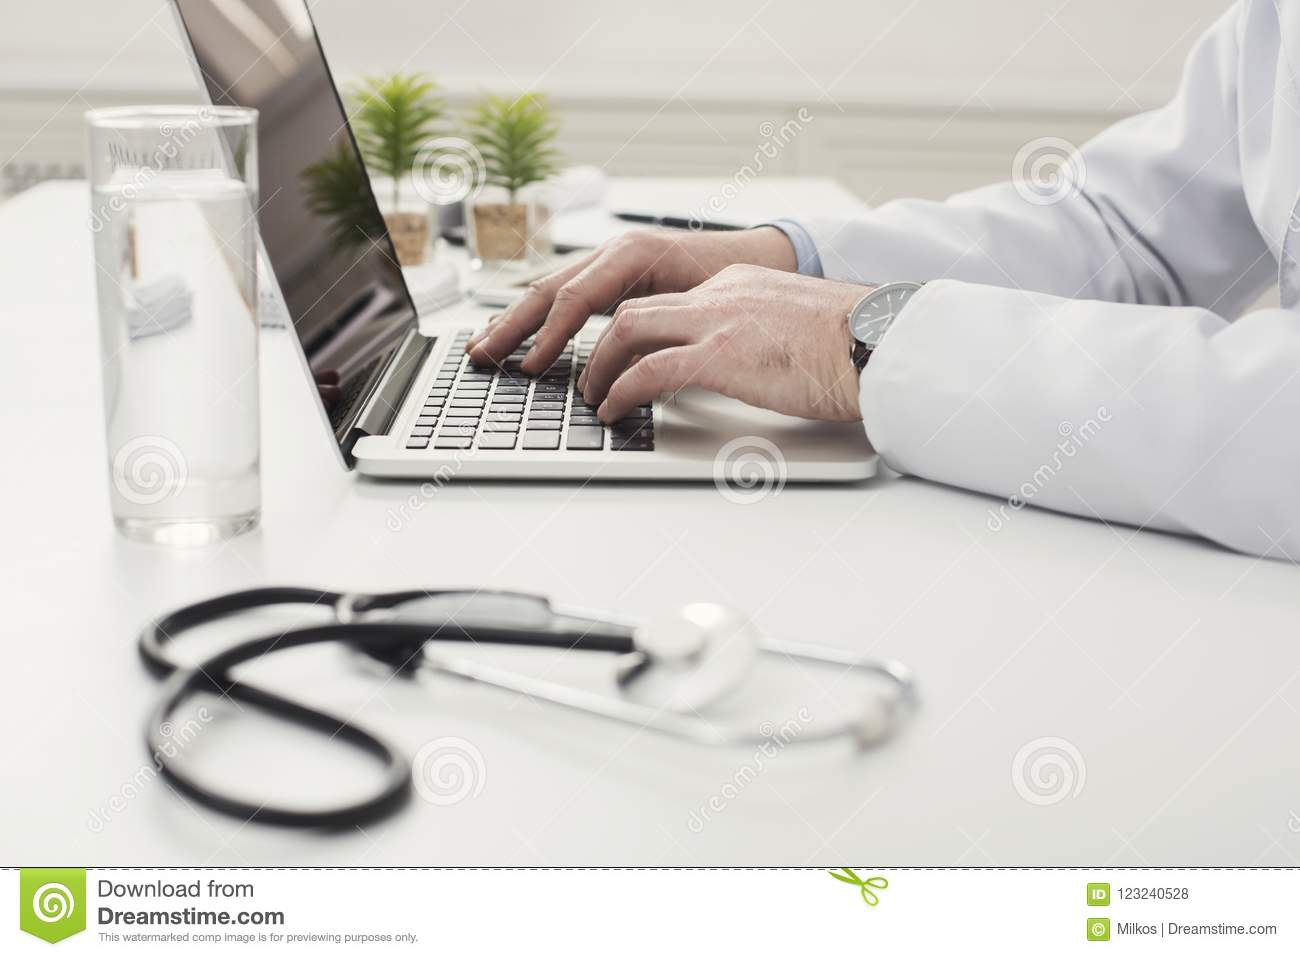 Closeup of doctor hands on laptop keyboard